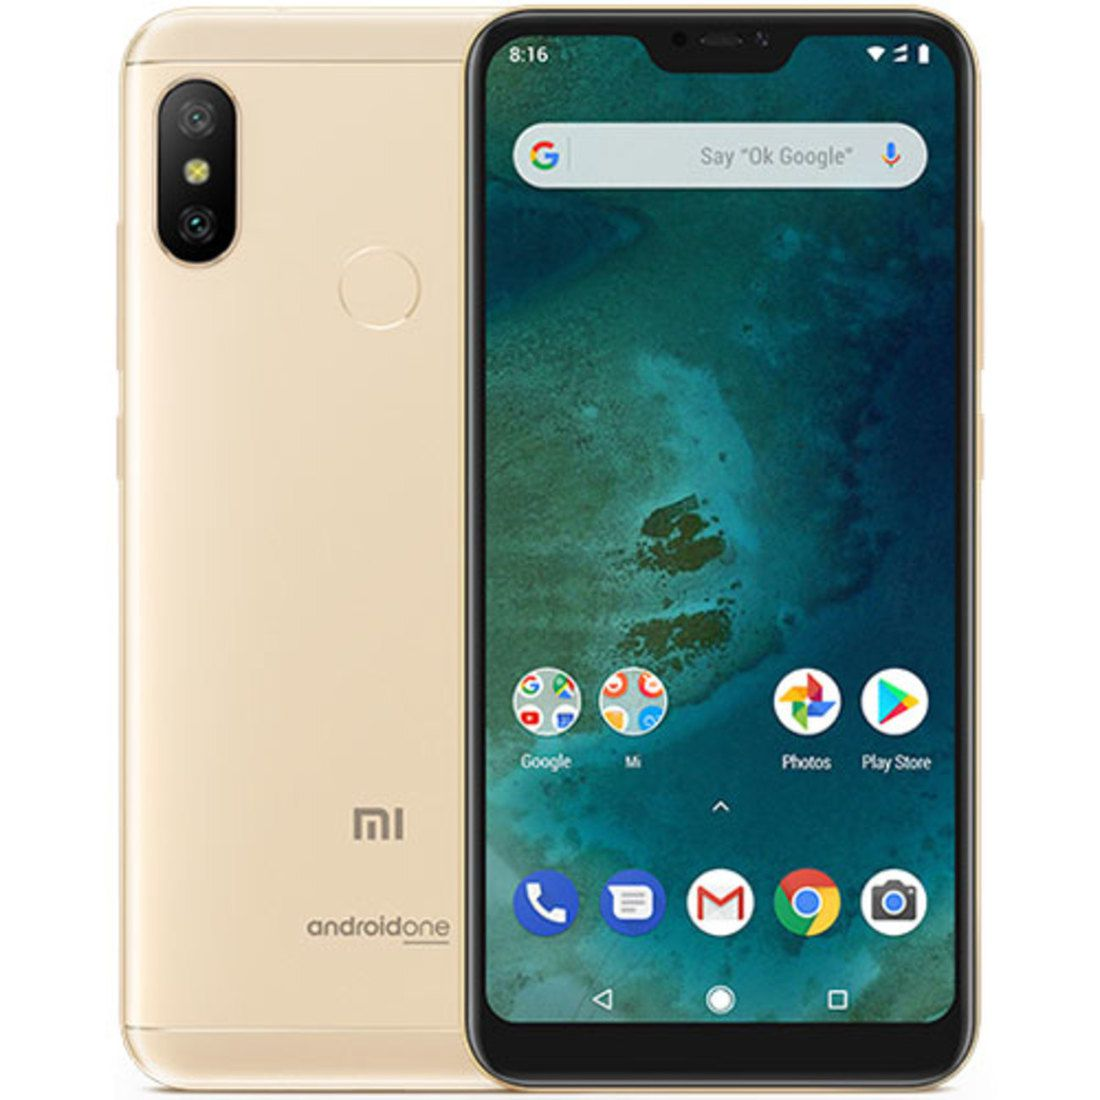 Smartphone Mi A2 Lite 3GB Ram Tela 5.84 32GB Camera Dupla 12+5MP - Dourado